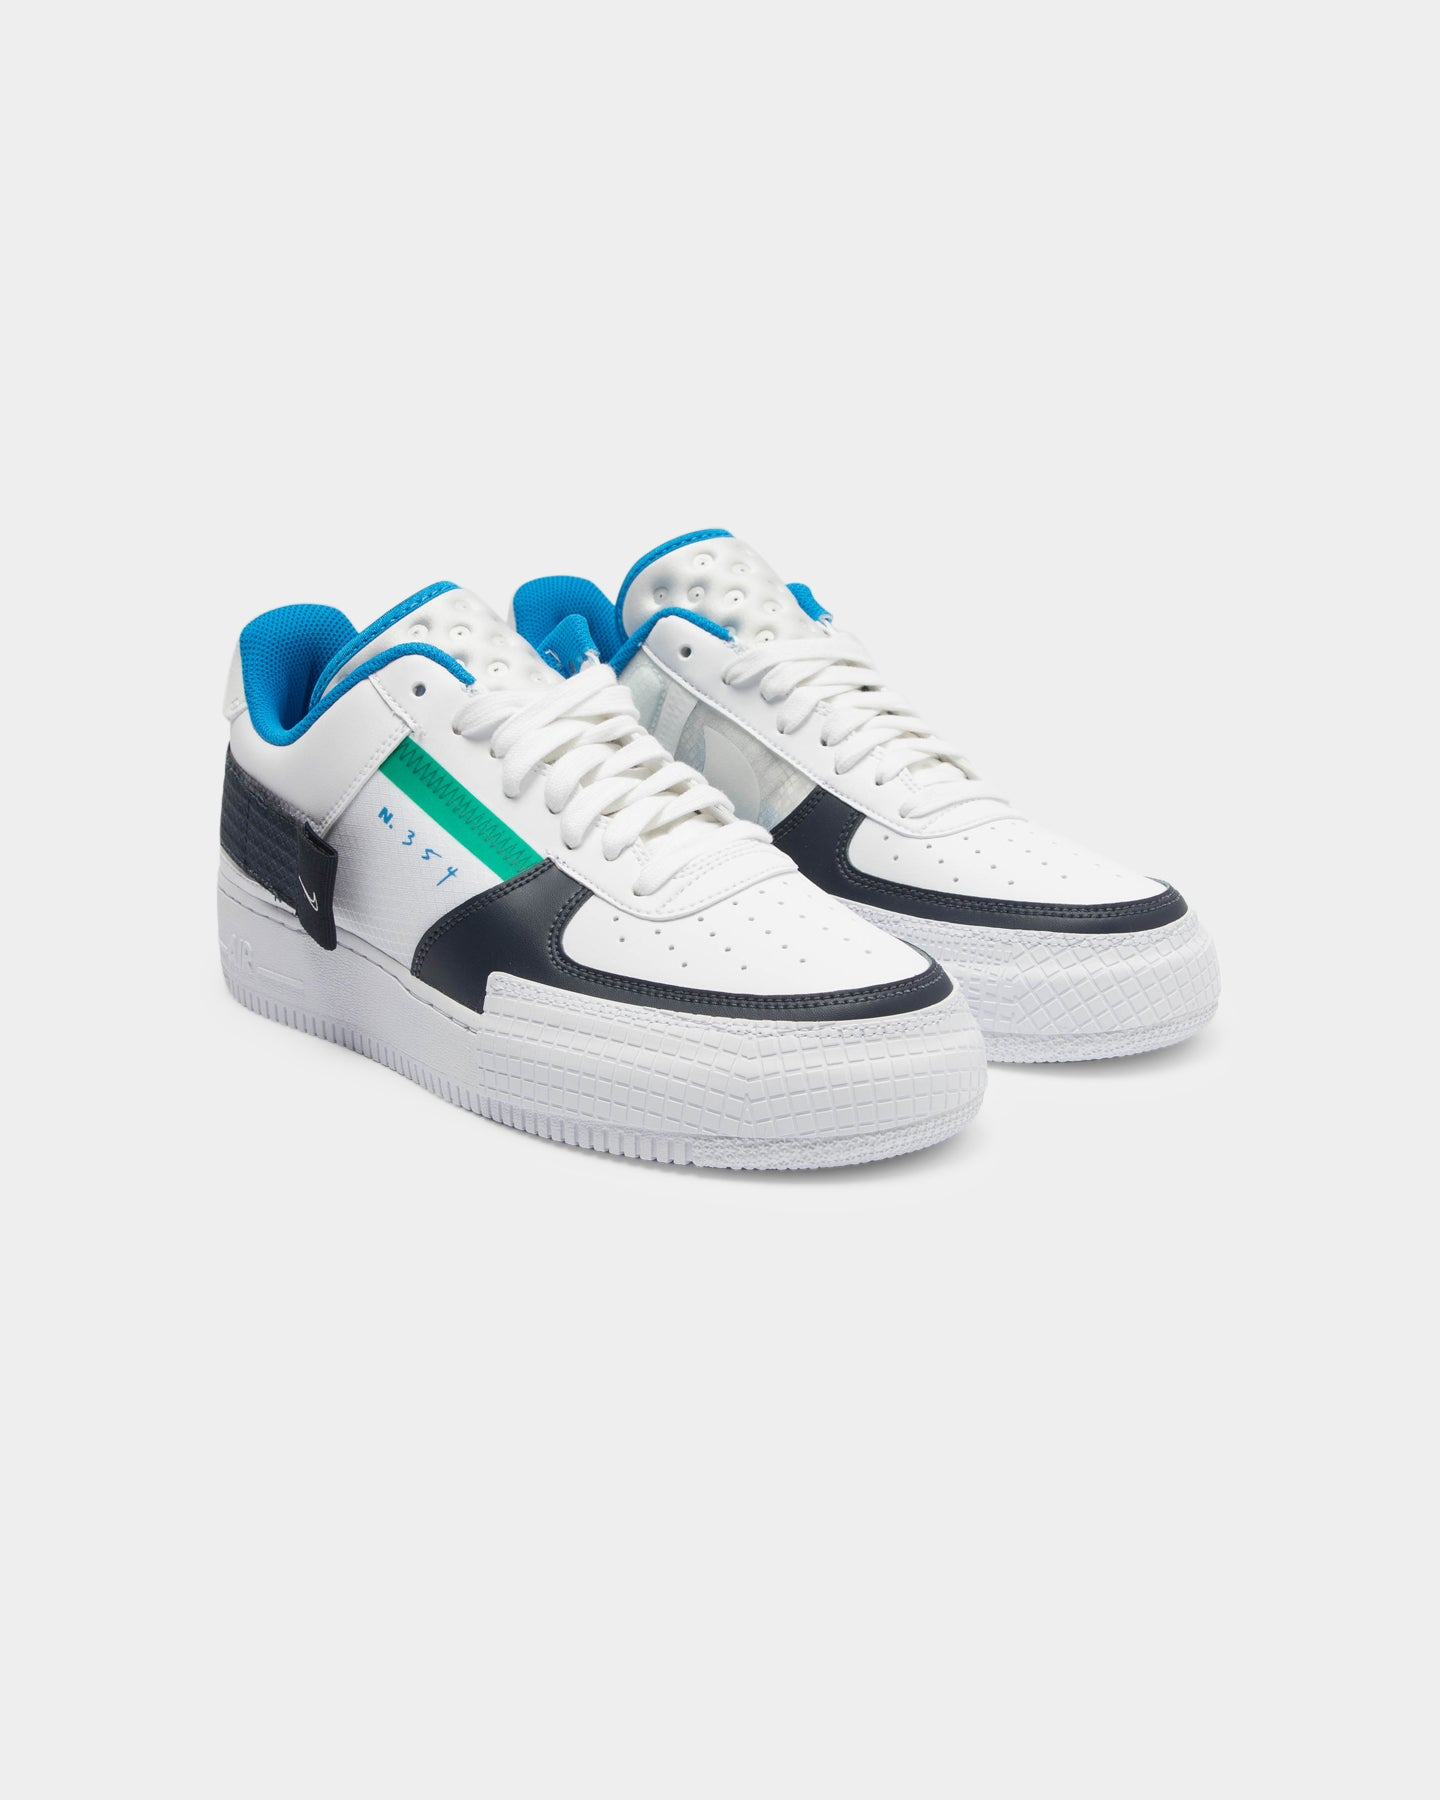 Nike Air Force 1 in ObsidianWhiteObsidian Style Code